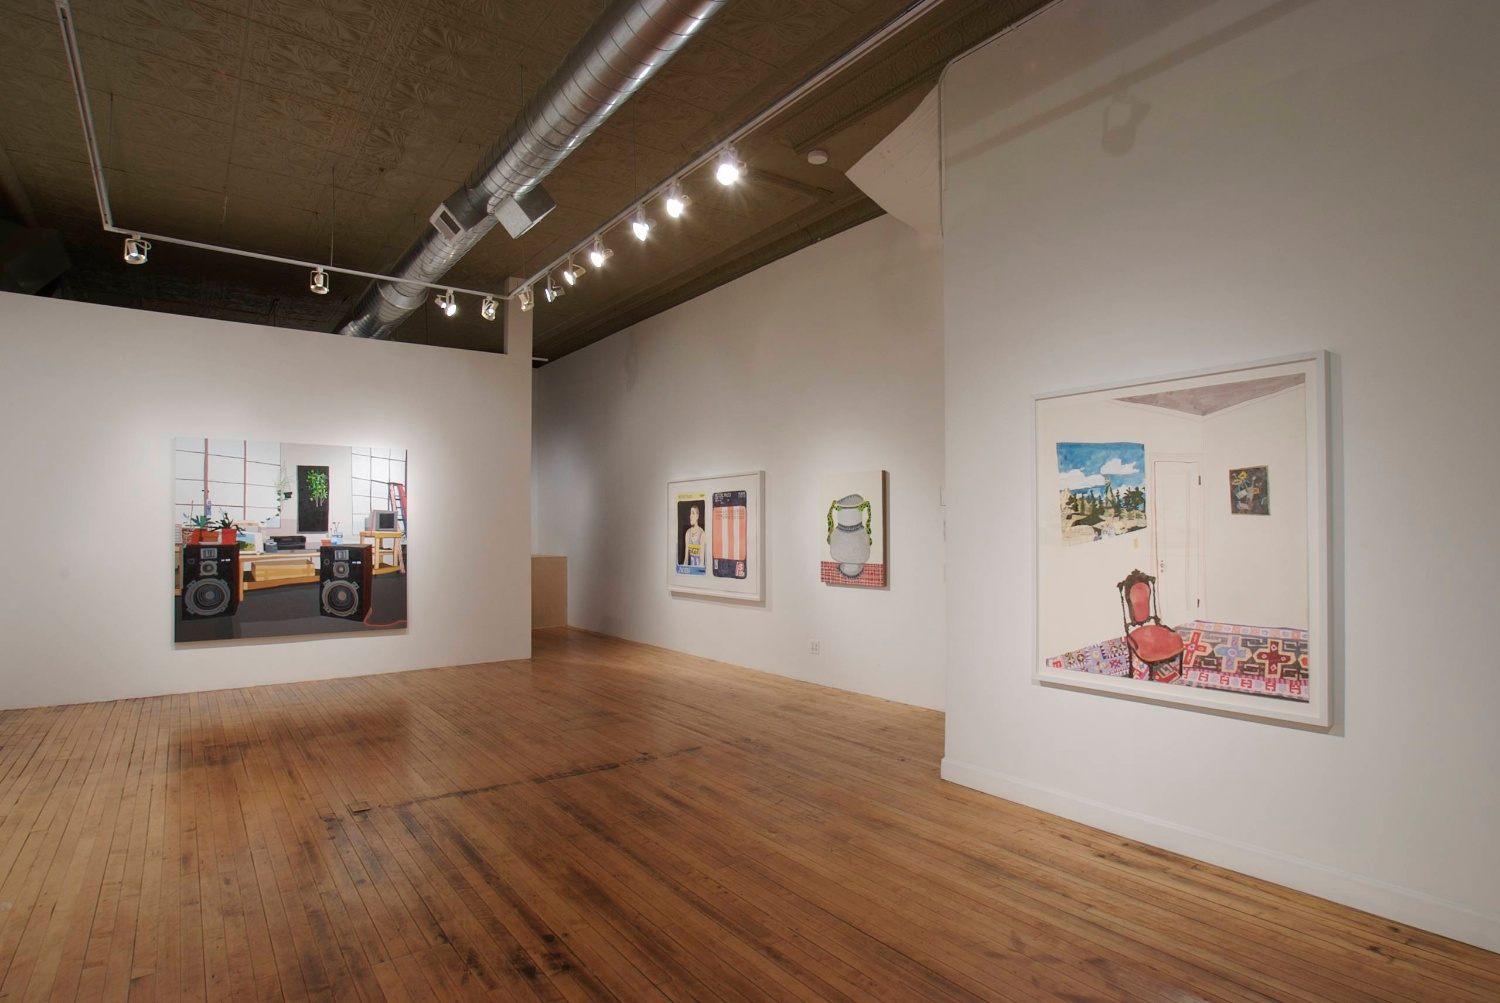 Jonas Wood 2007 Shane Campbell Gallery, Chicago Installation View